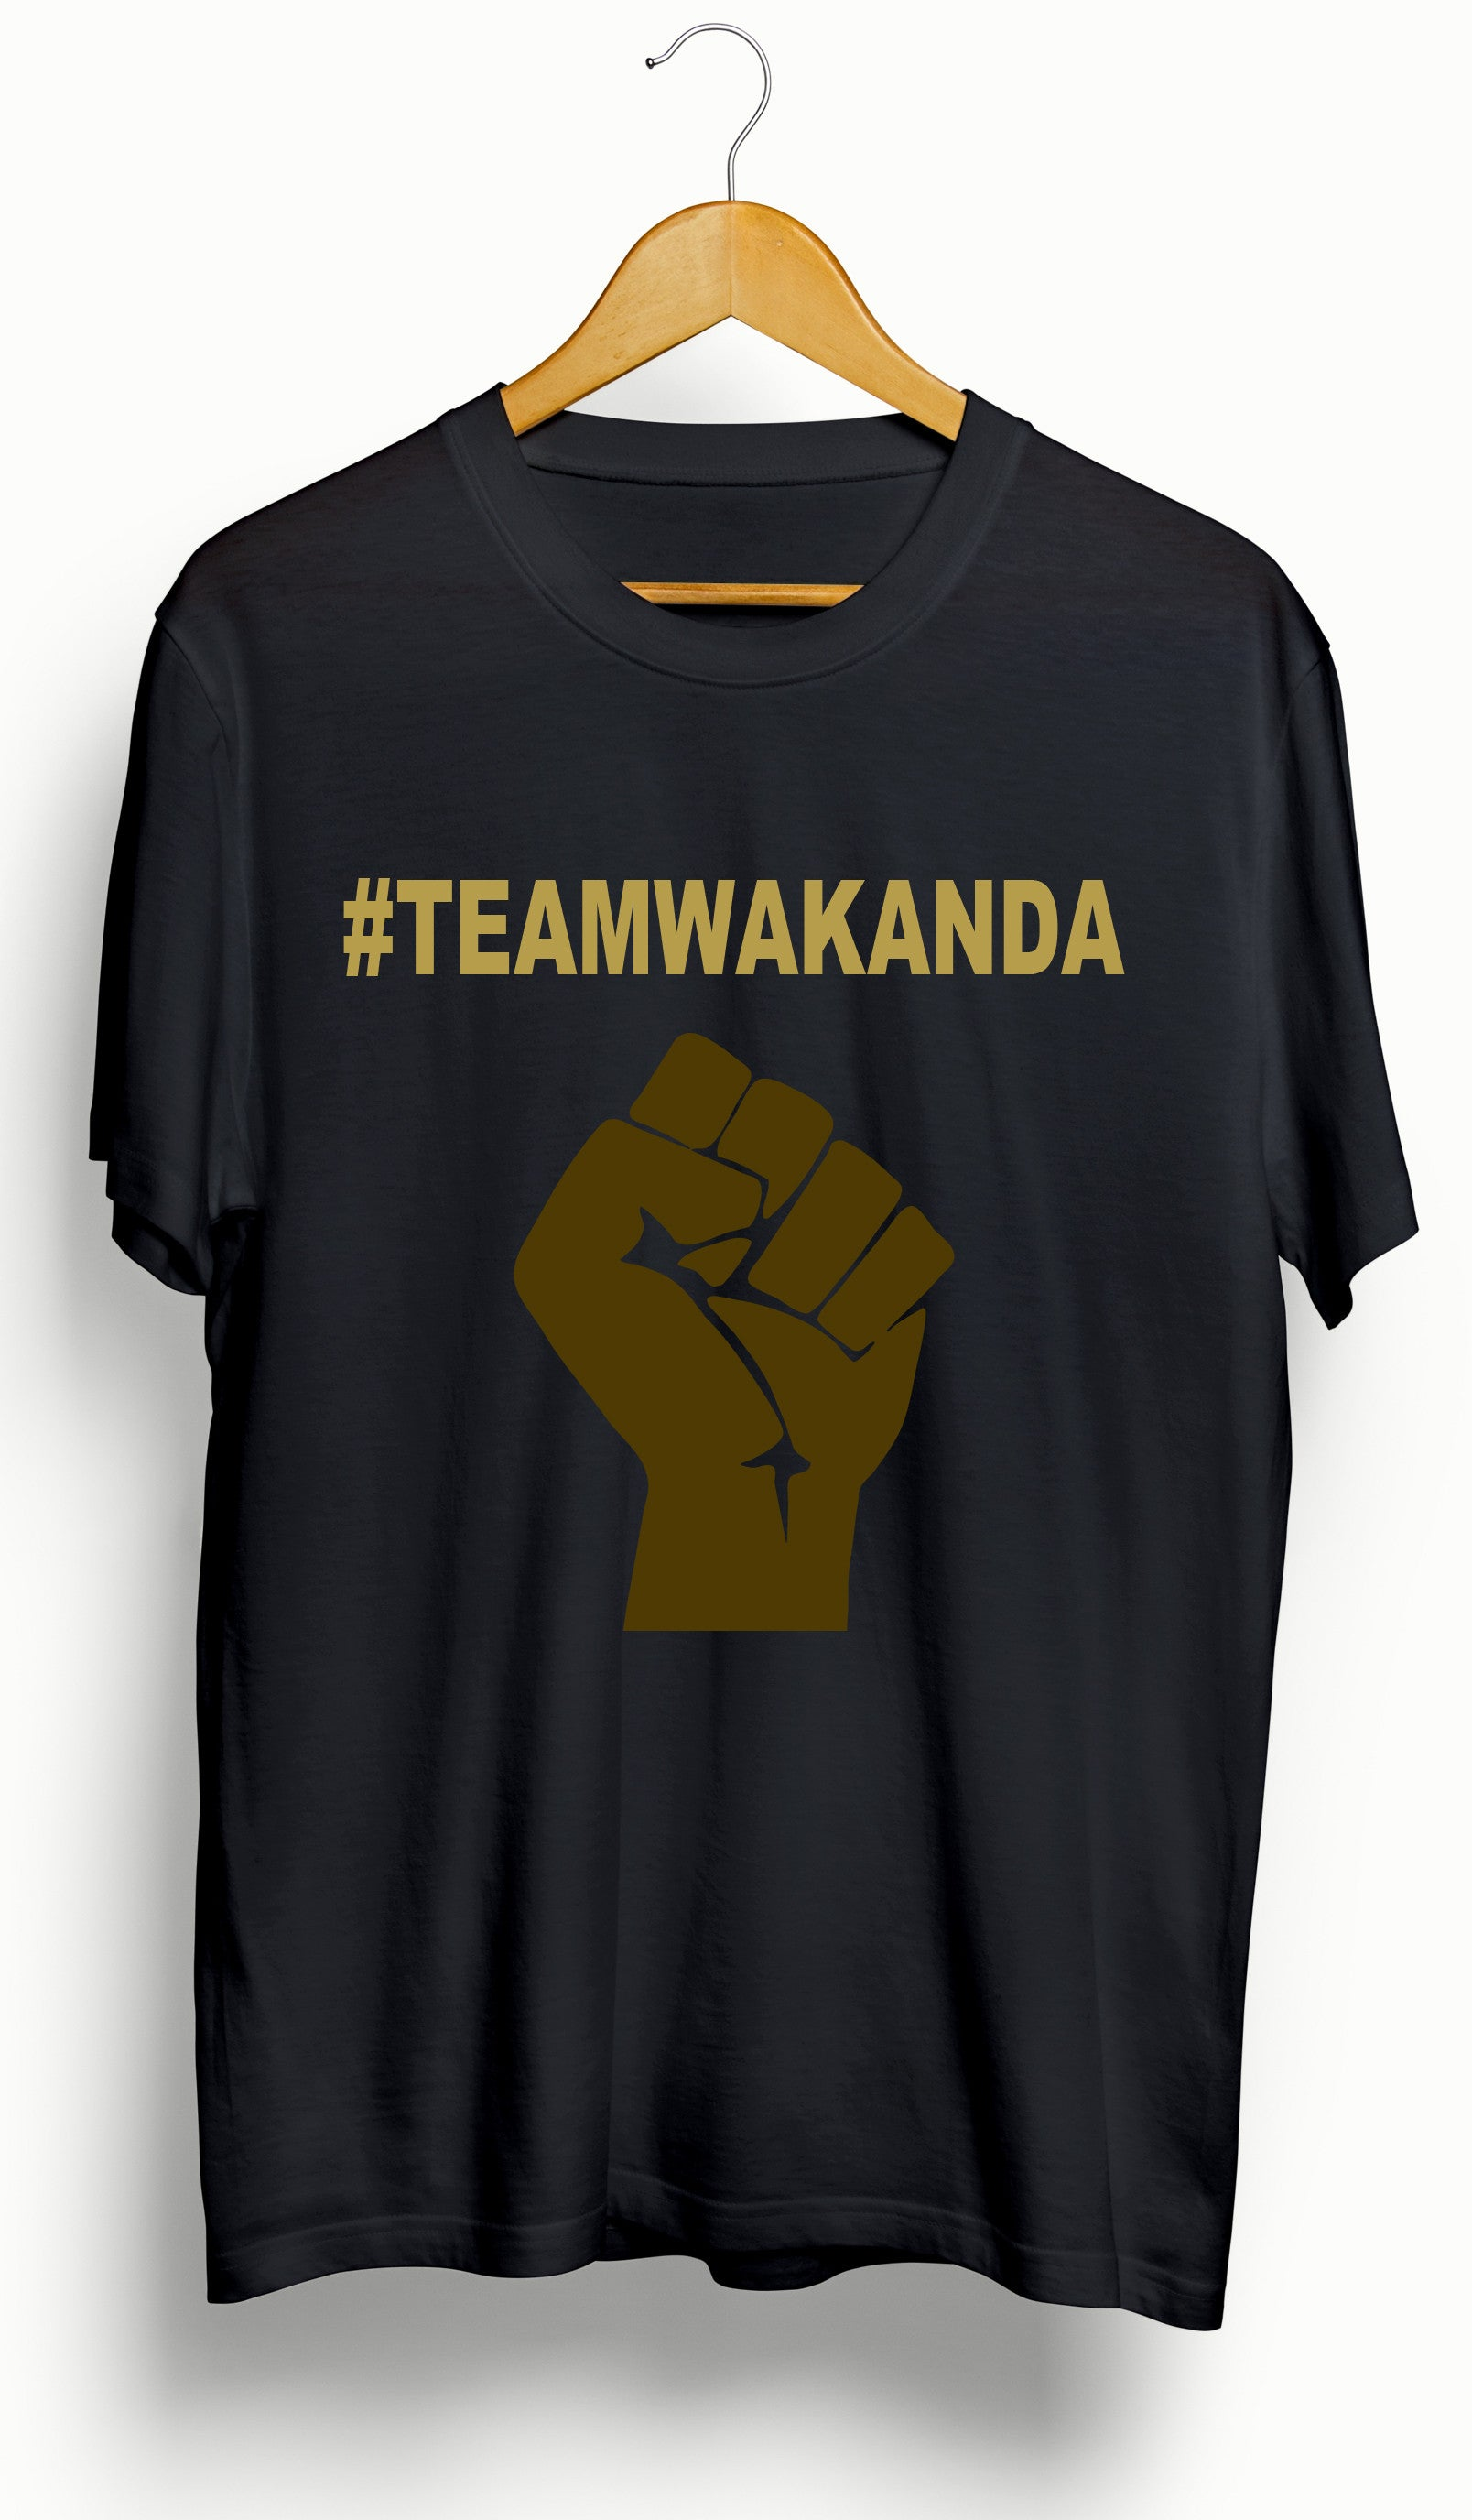 Team Wakanda/Black Panther T-Shirt